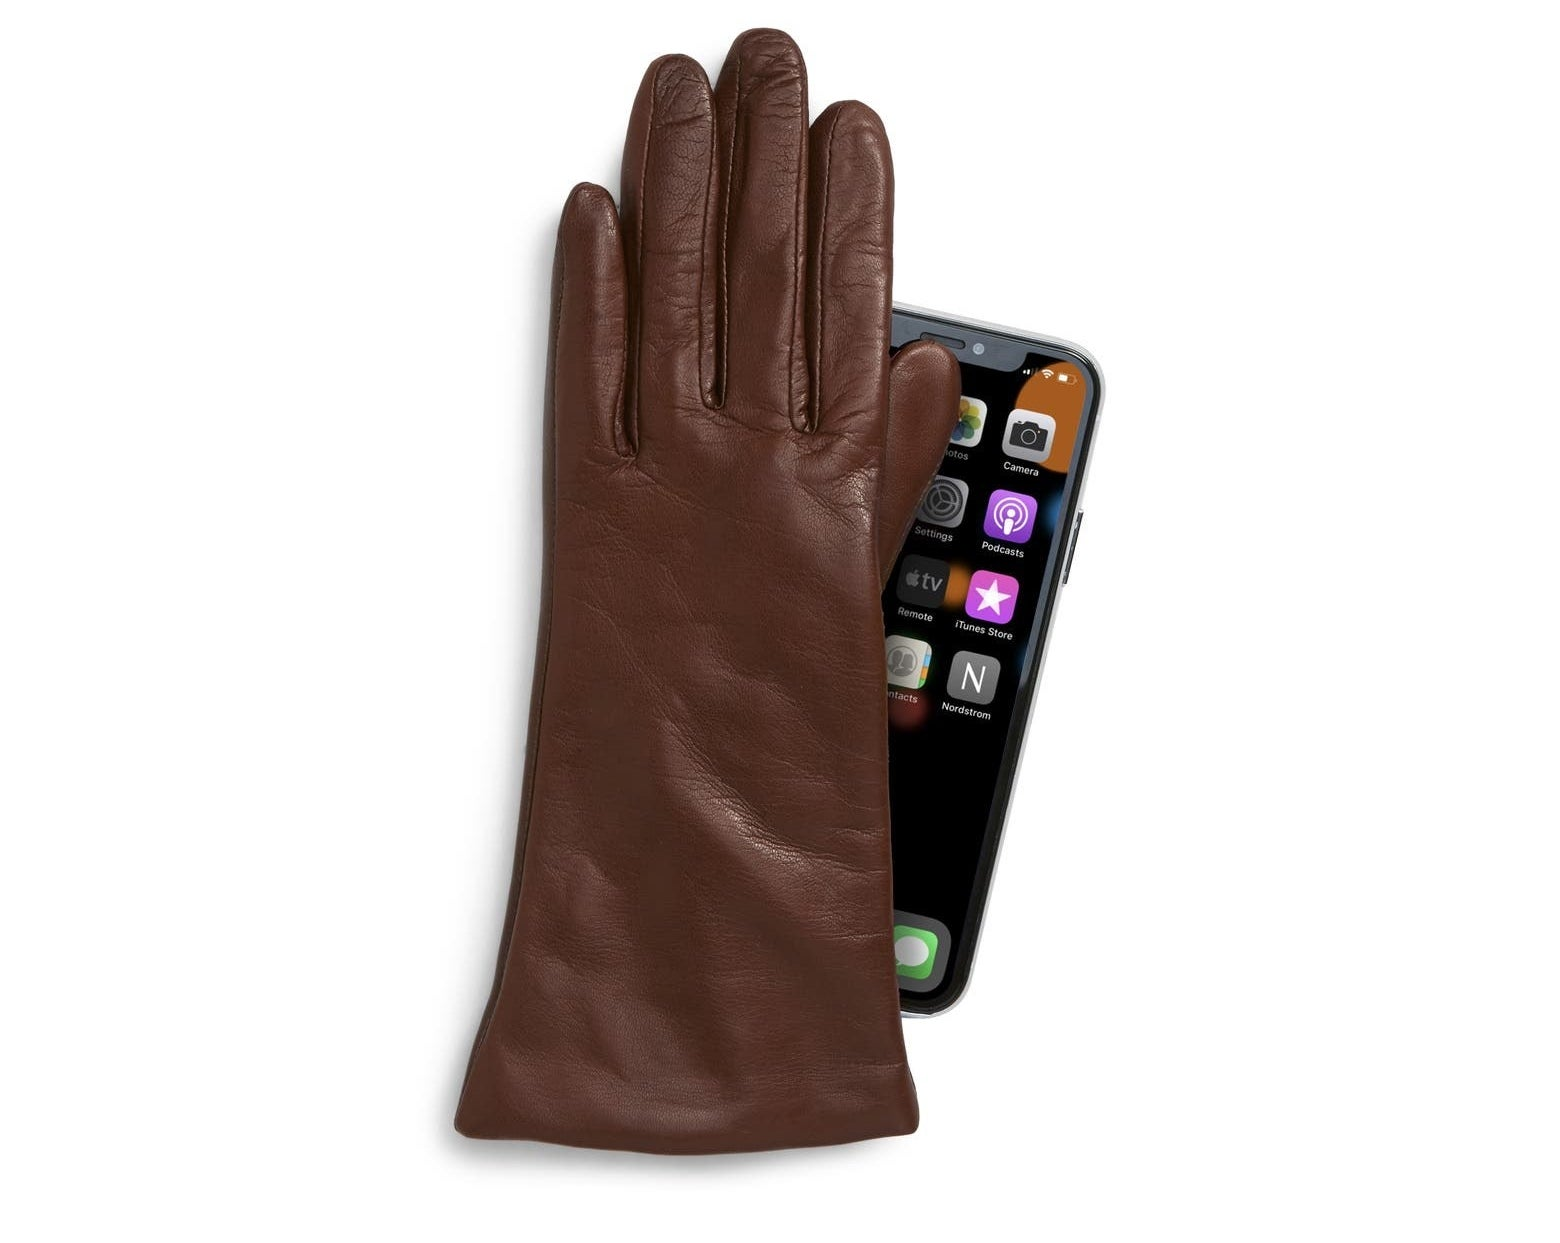 The brown leather gloves